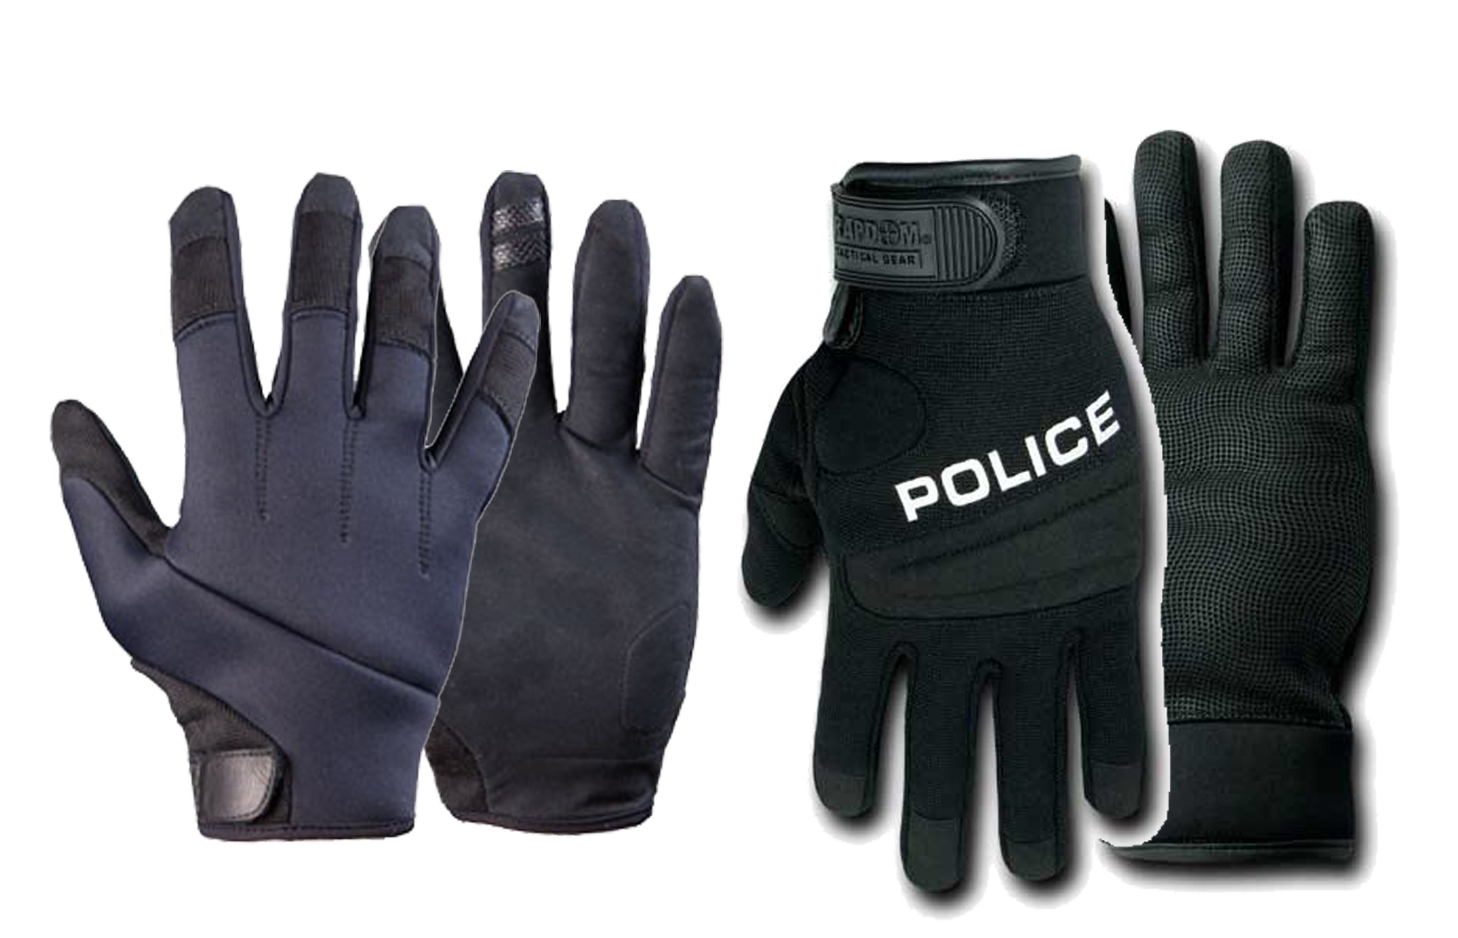 police tactical gloves at berei